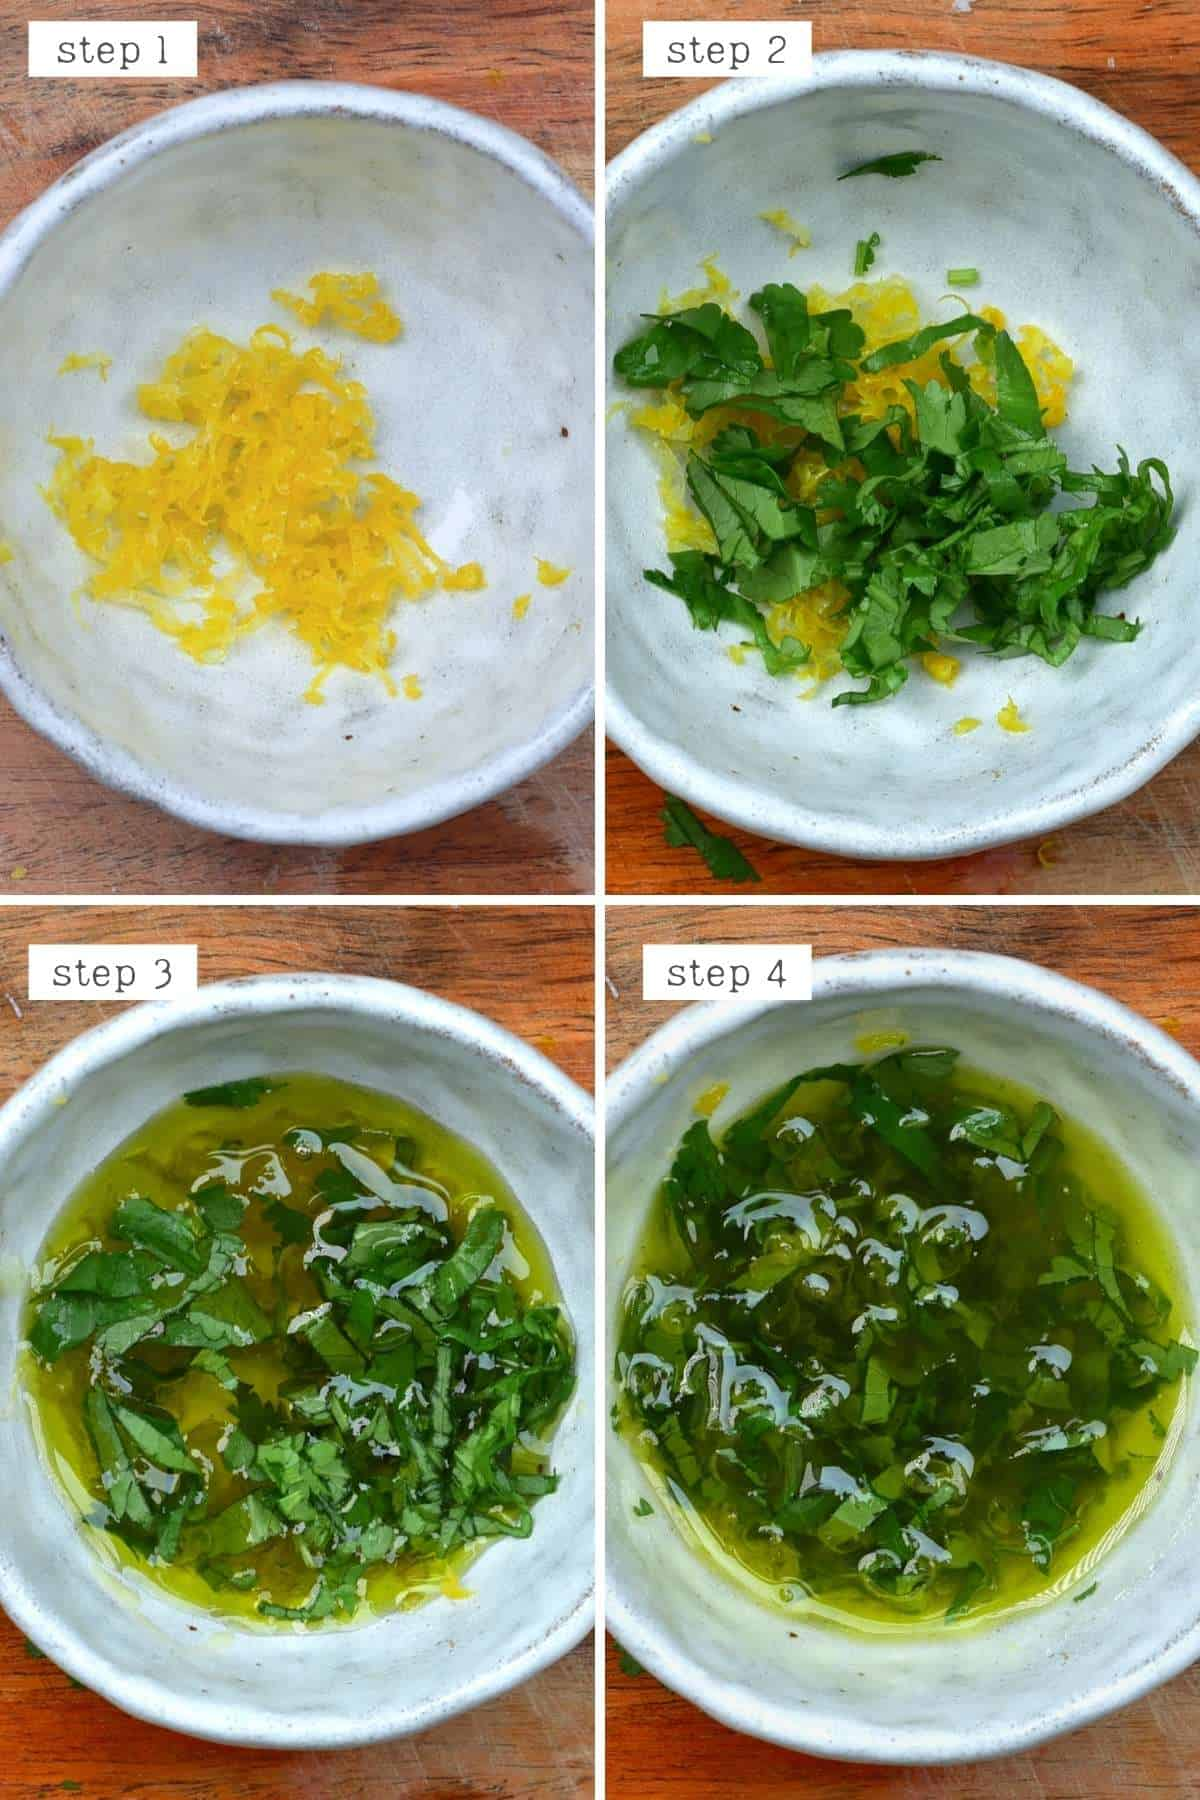 Steps for mixing lemon zest with cilantro and oil